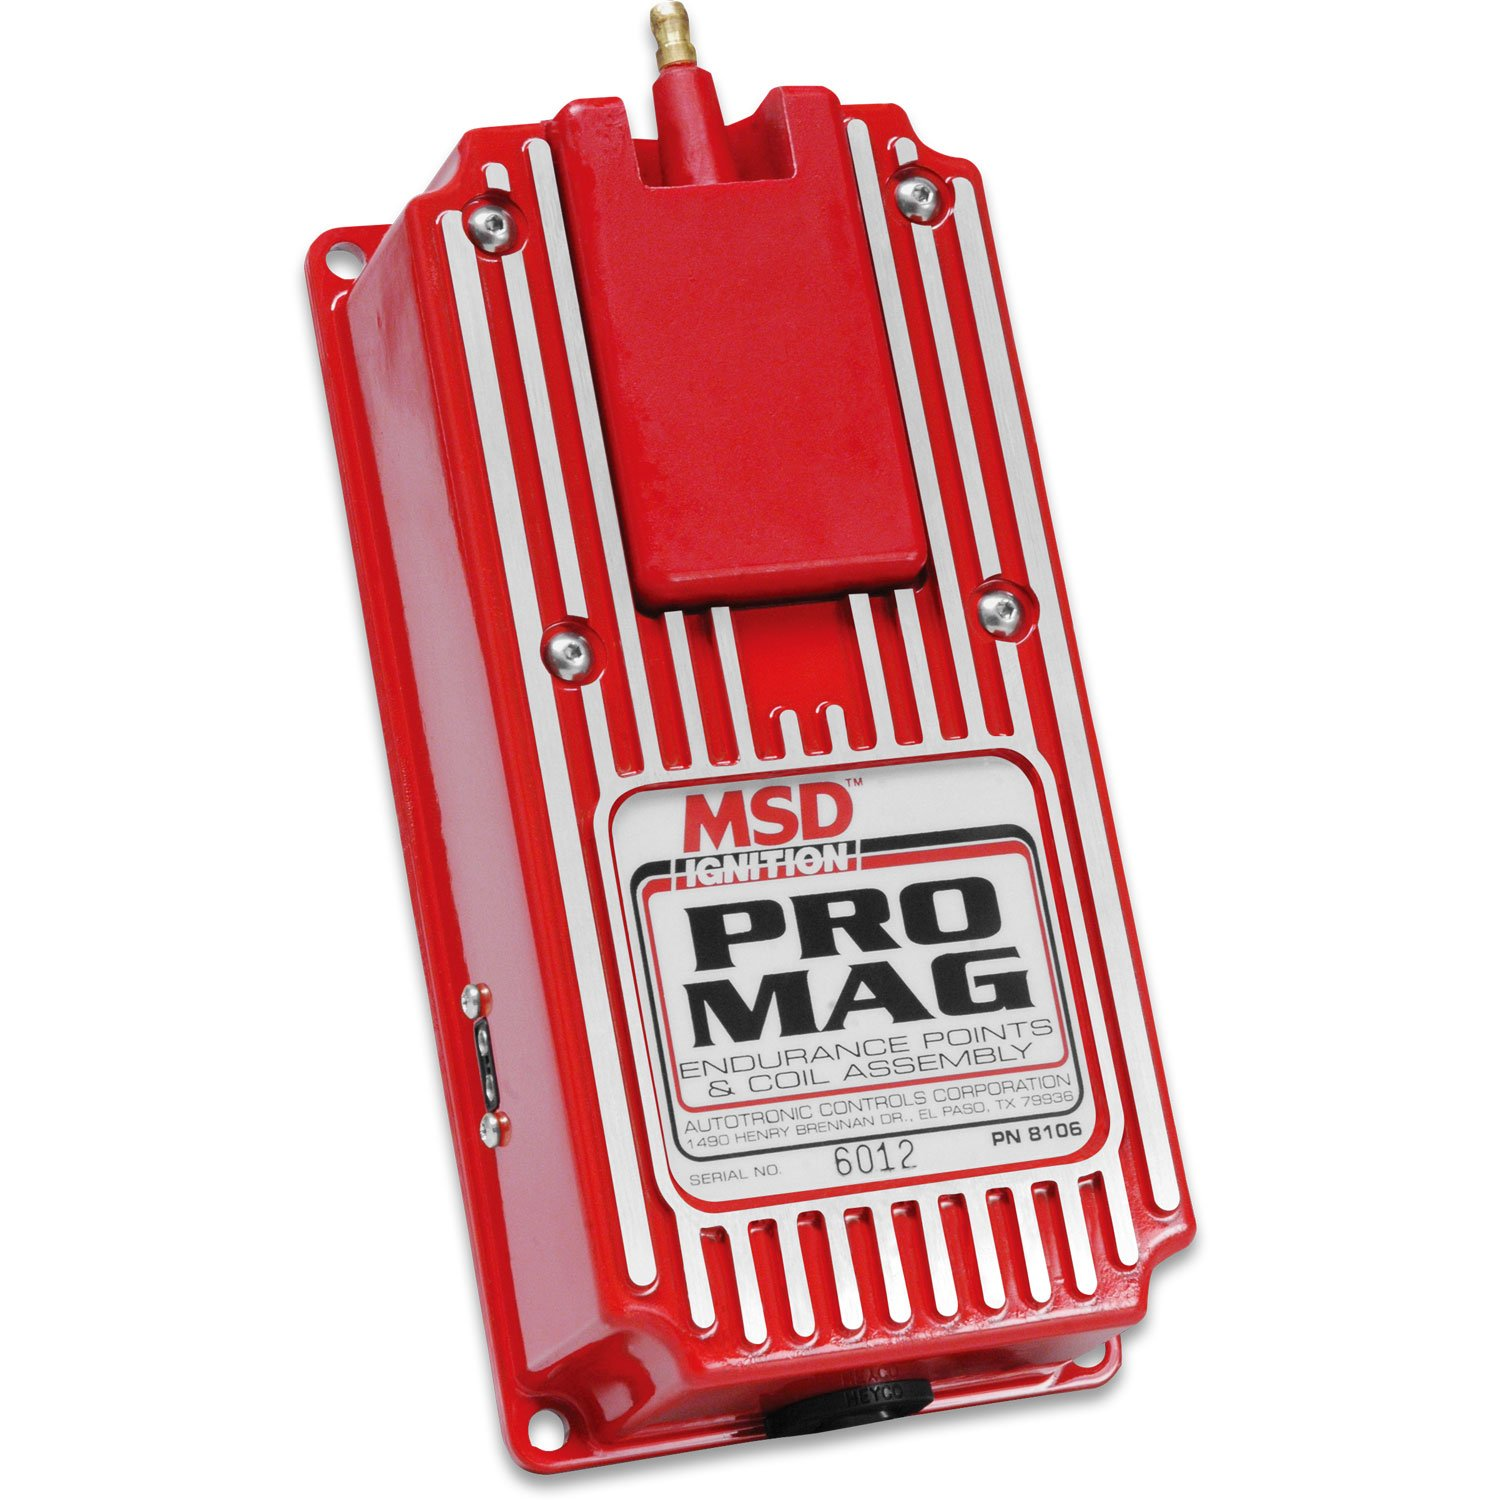 8106_v1 pro mag 8106 pro mag 12 20 amp electronic points box, red msd msd soft touch rev control wire diagram at fashall.co